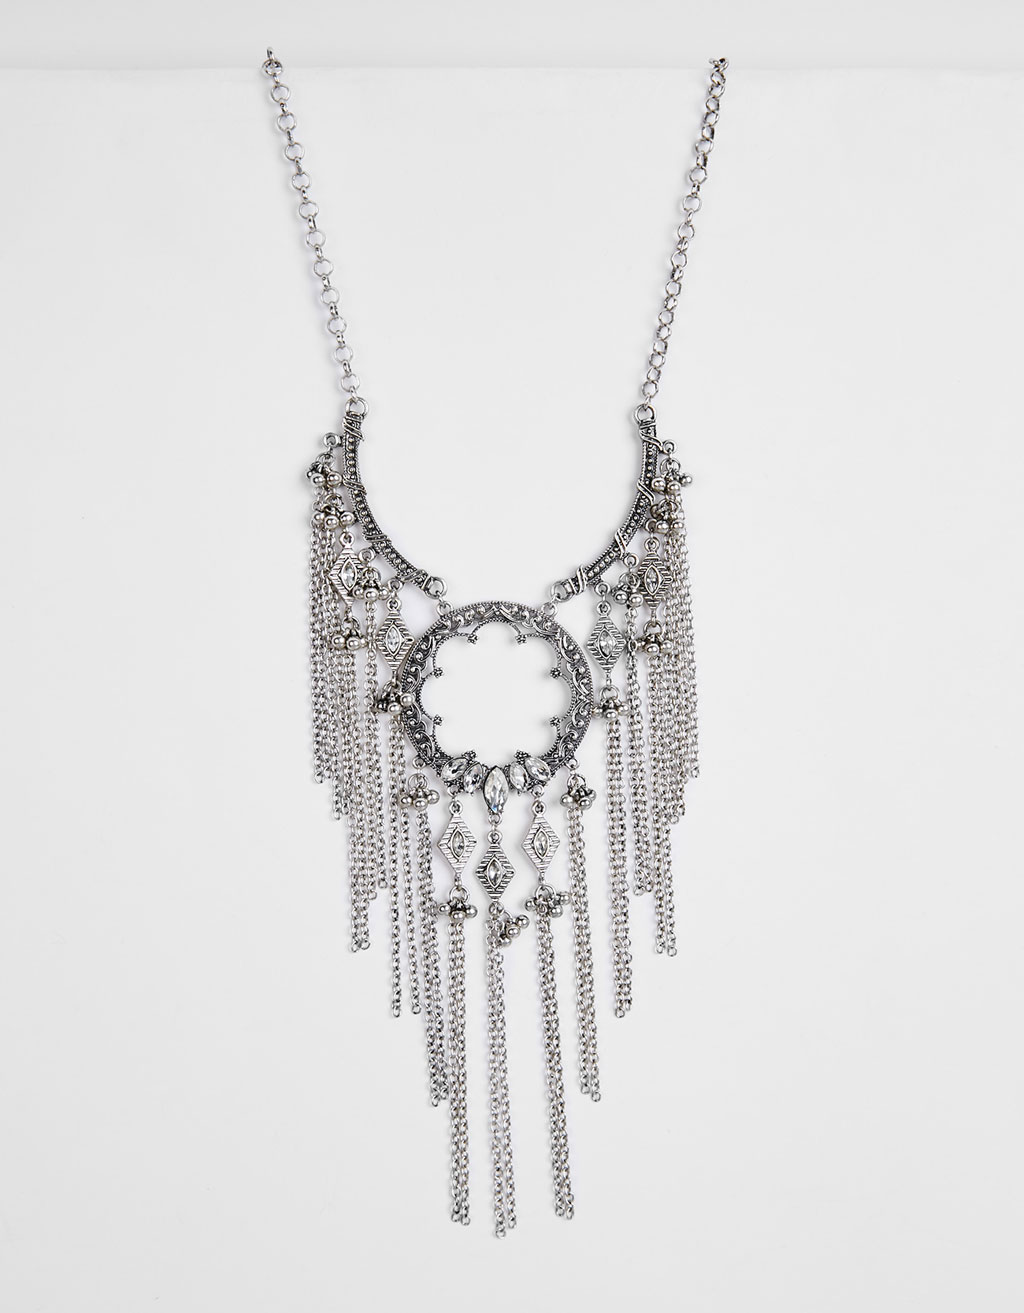 Chain fringed necklace with crystal